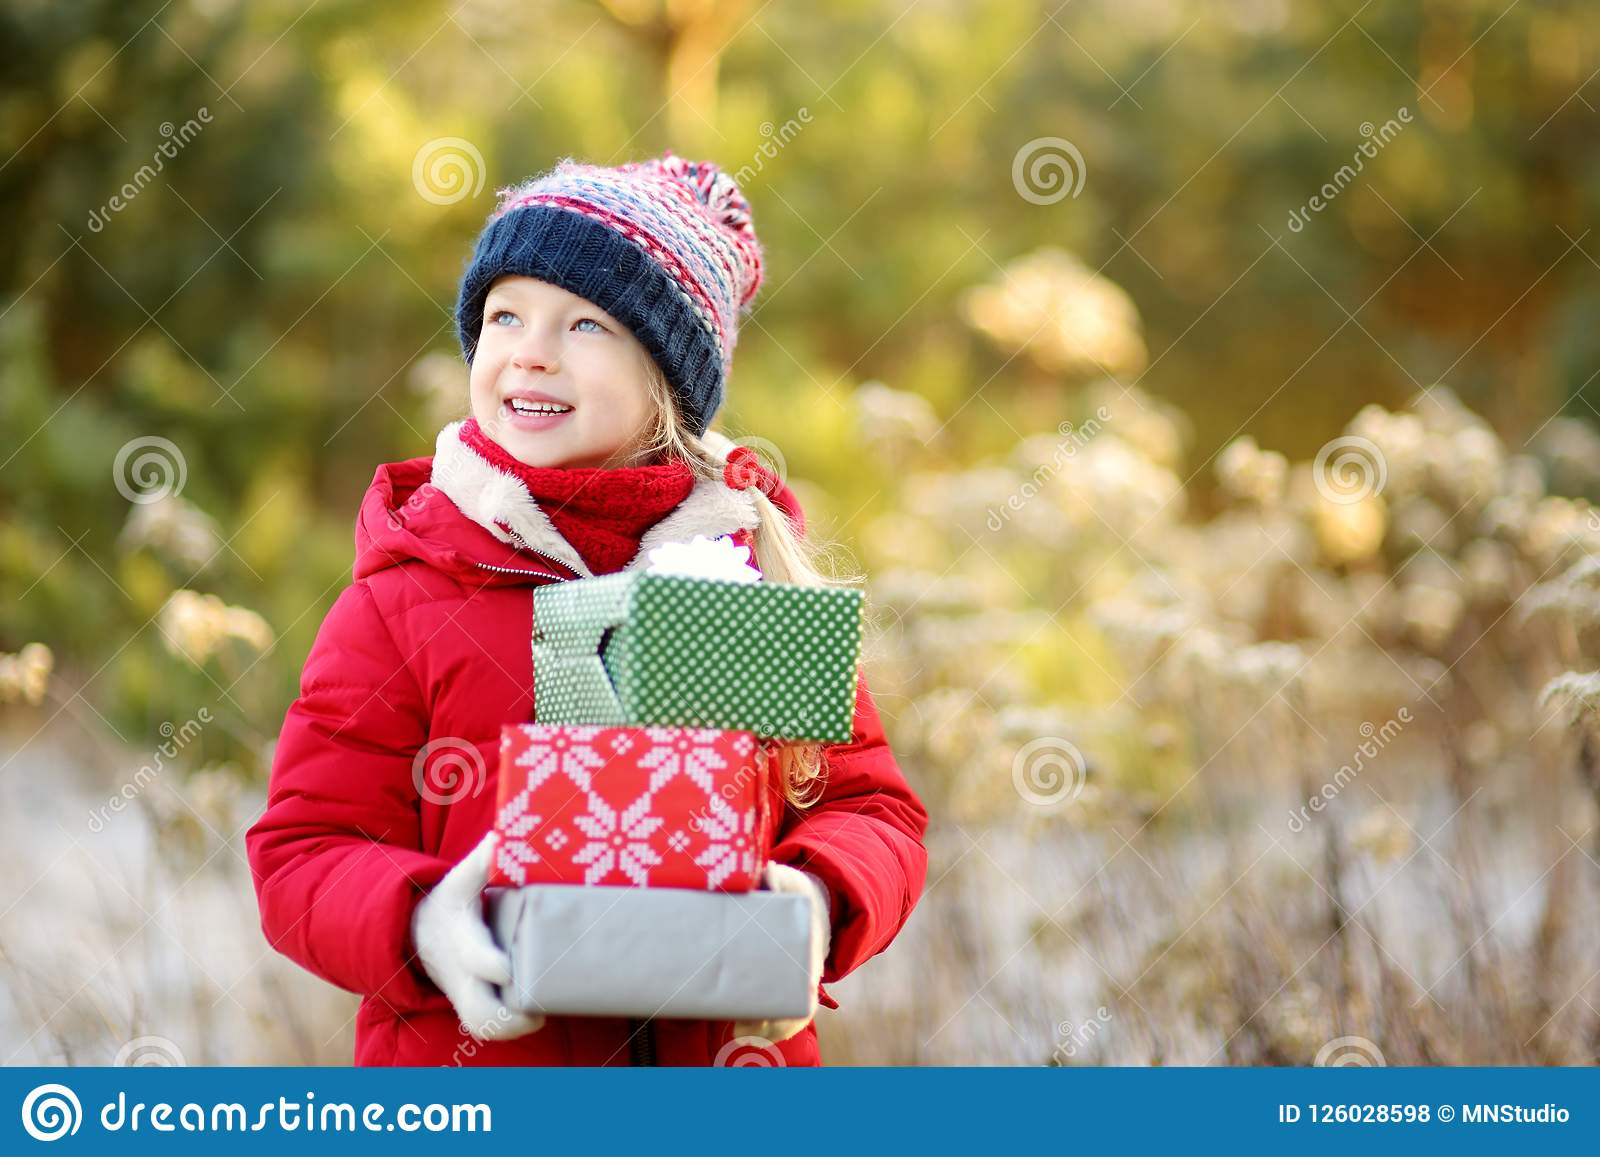 Adorable Little Girl Holding A Pile Of Christmas Gifts On Beautiful Sunny Winter Day. Stock ...